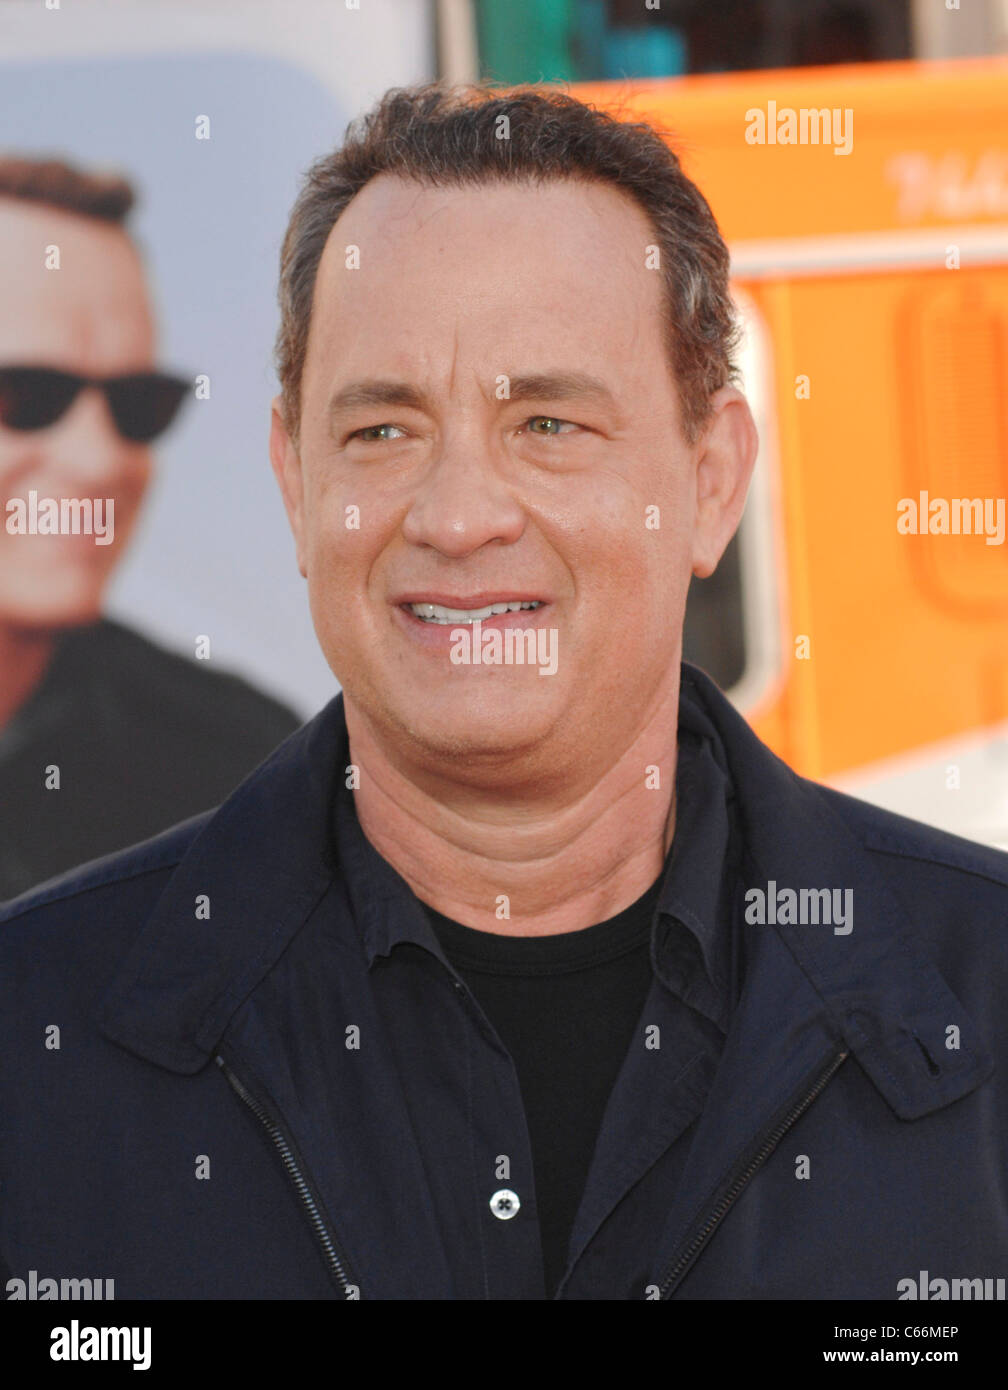 Tom Hanks at arrivals for LARRY CROWNE Premiere, Grauman's Chinese Theatre, Los Angeles, CA June 27, 2011. Photo - Stock Image